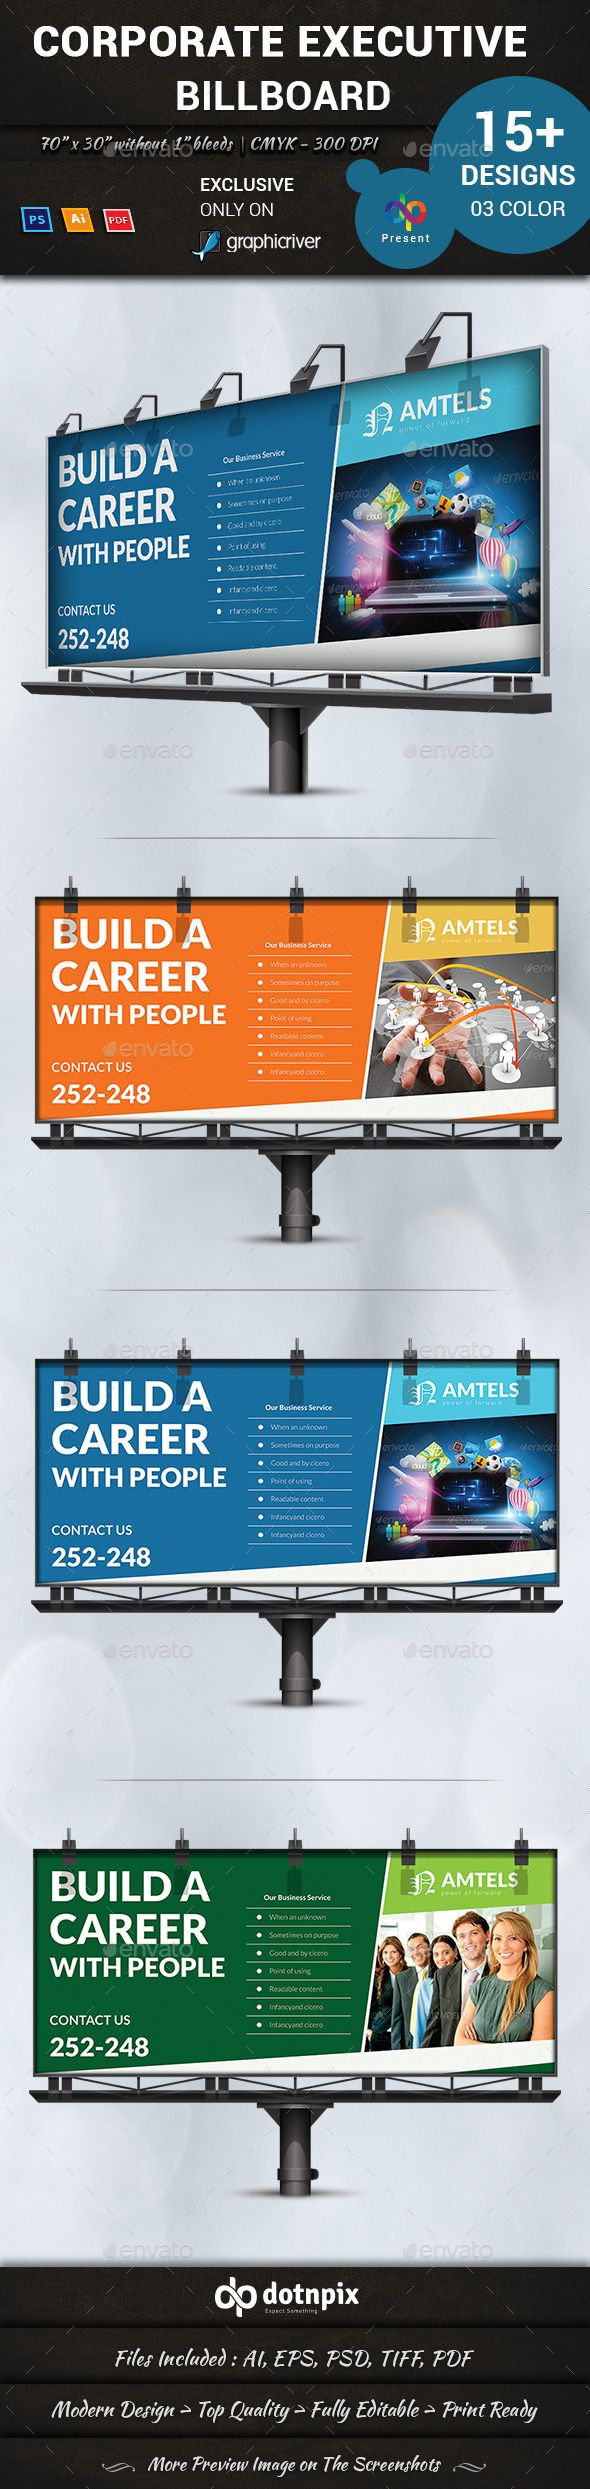 Corporate Executive Billboard — Photoshop PSD #contemporary #advertising • Available here → https://graphicriver.net/item/corporate-executive-billboard/11062603?ref=pxcr